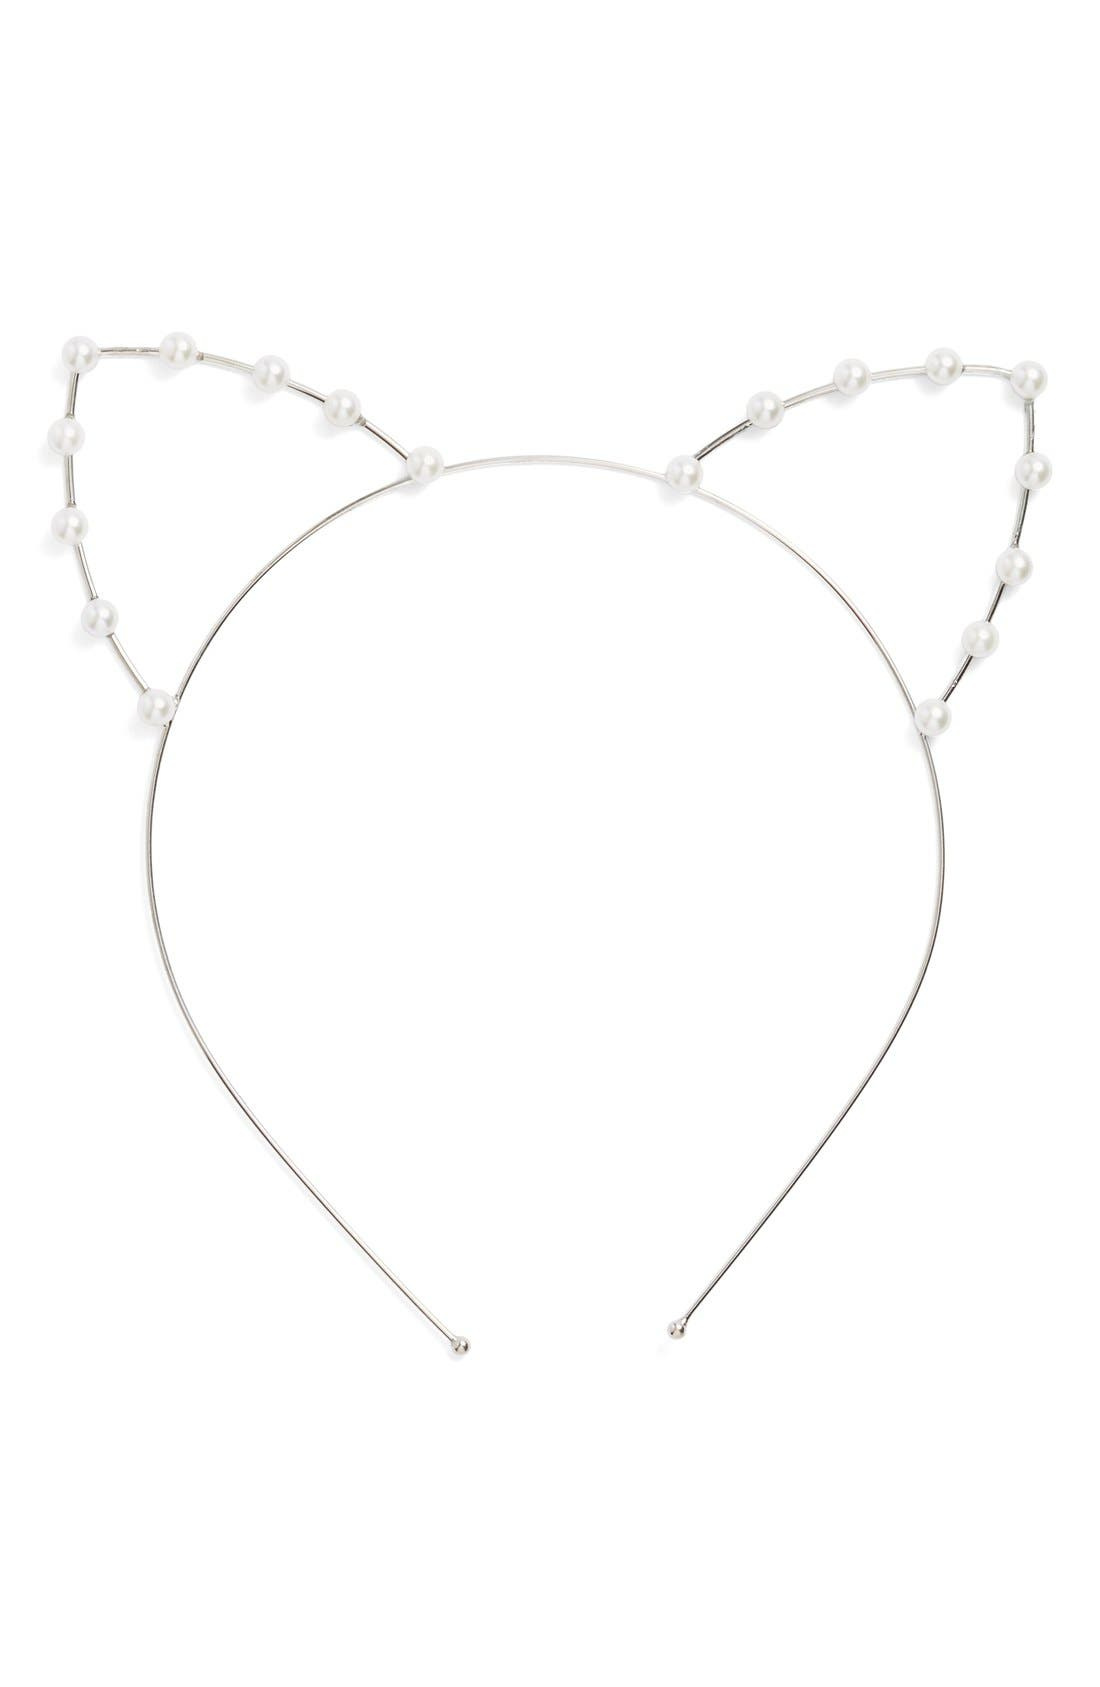 Main Image - Cara Faux Pearl Cat Ear Headband